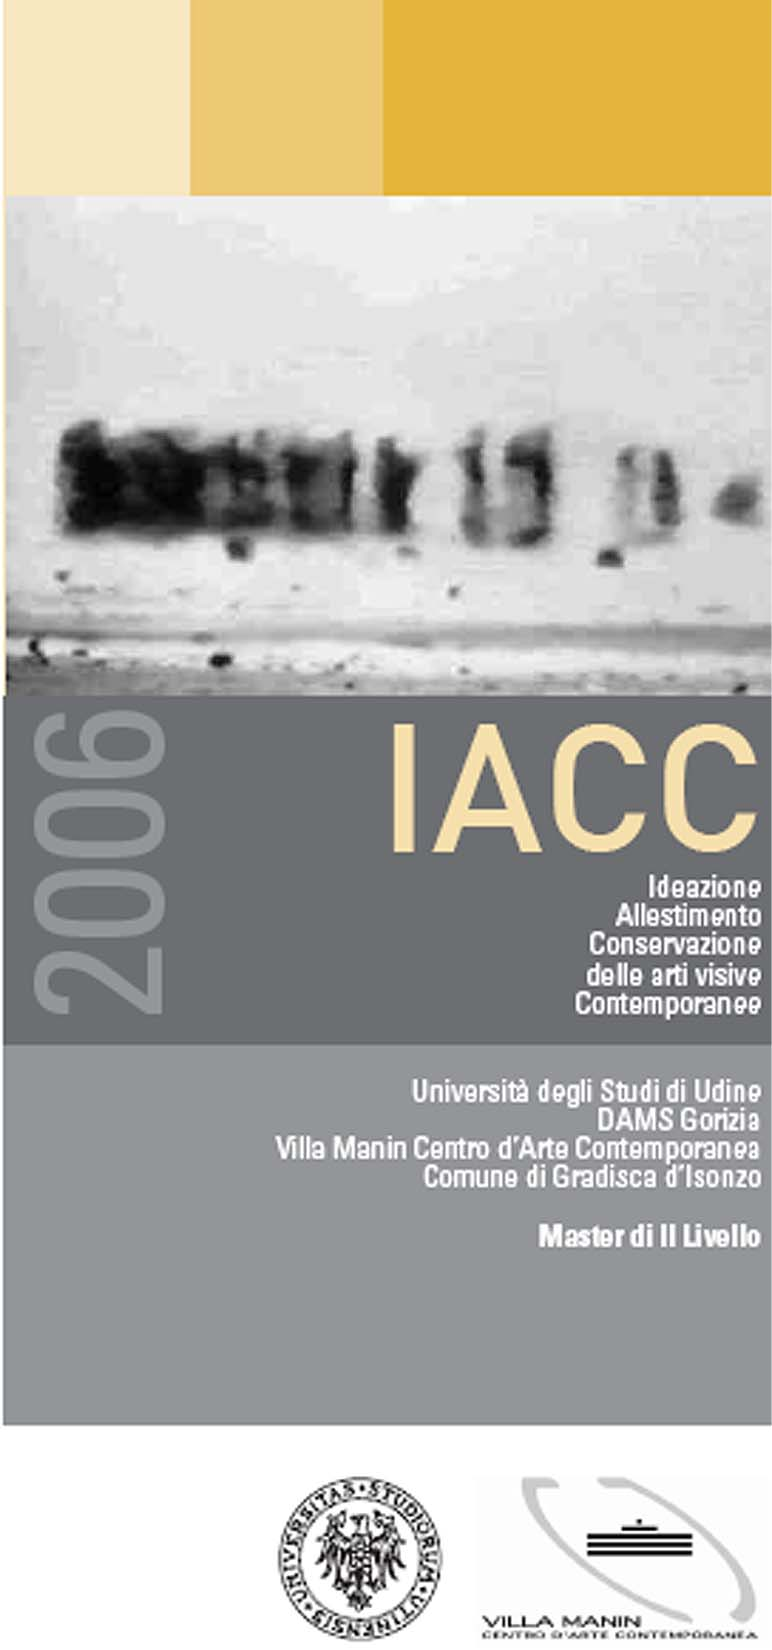 2007 / Master IACC